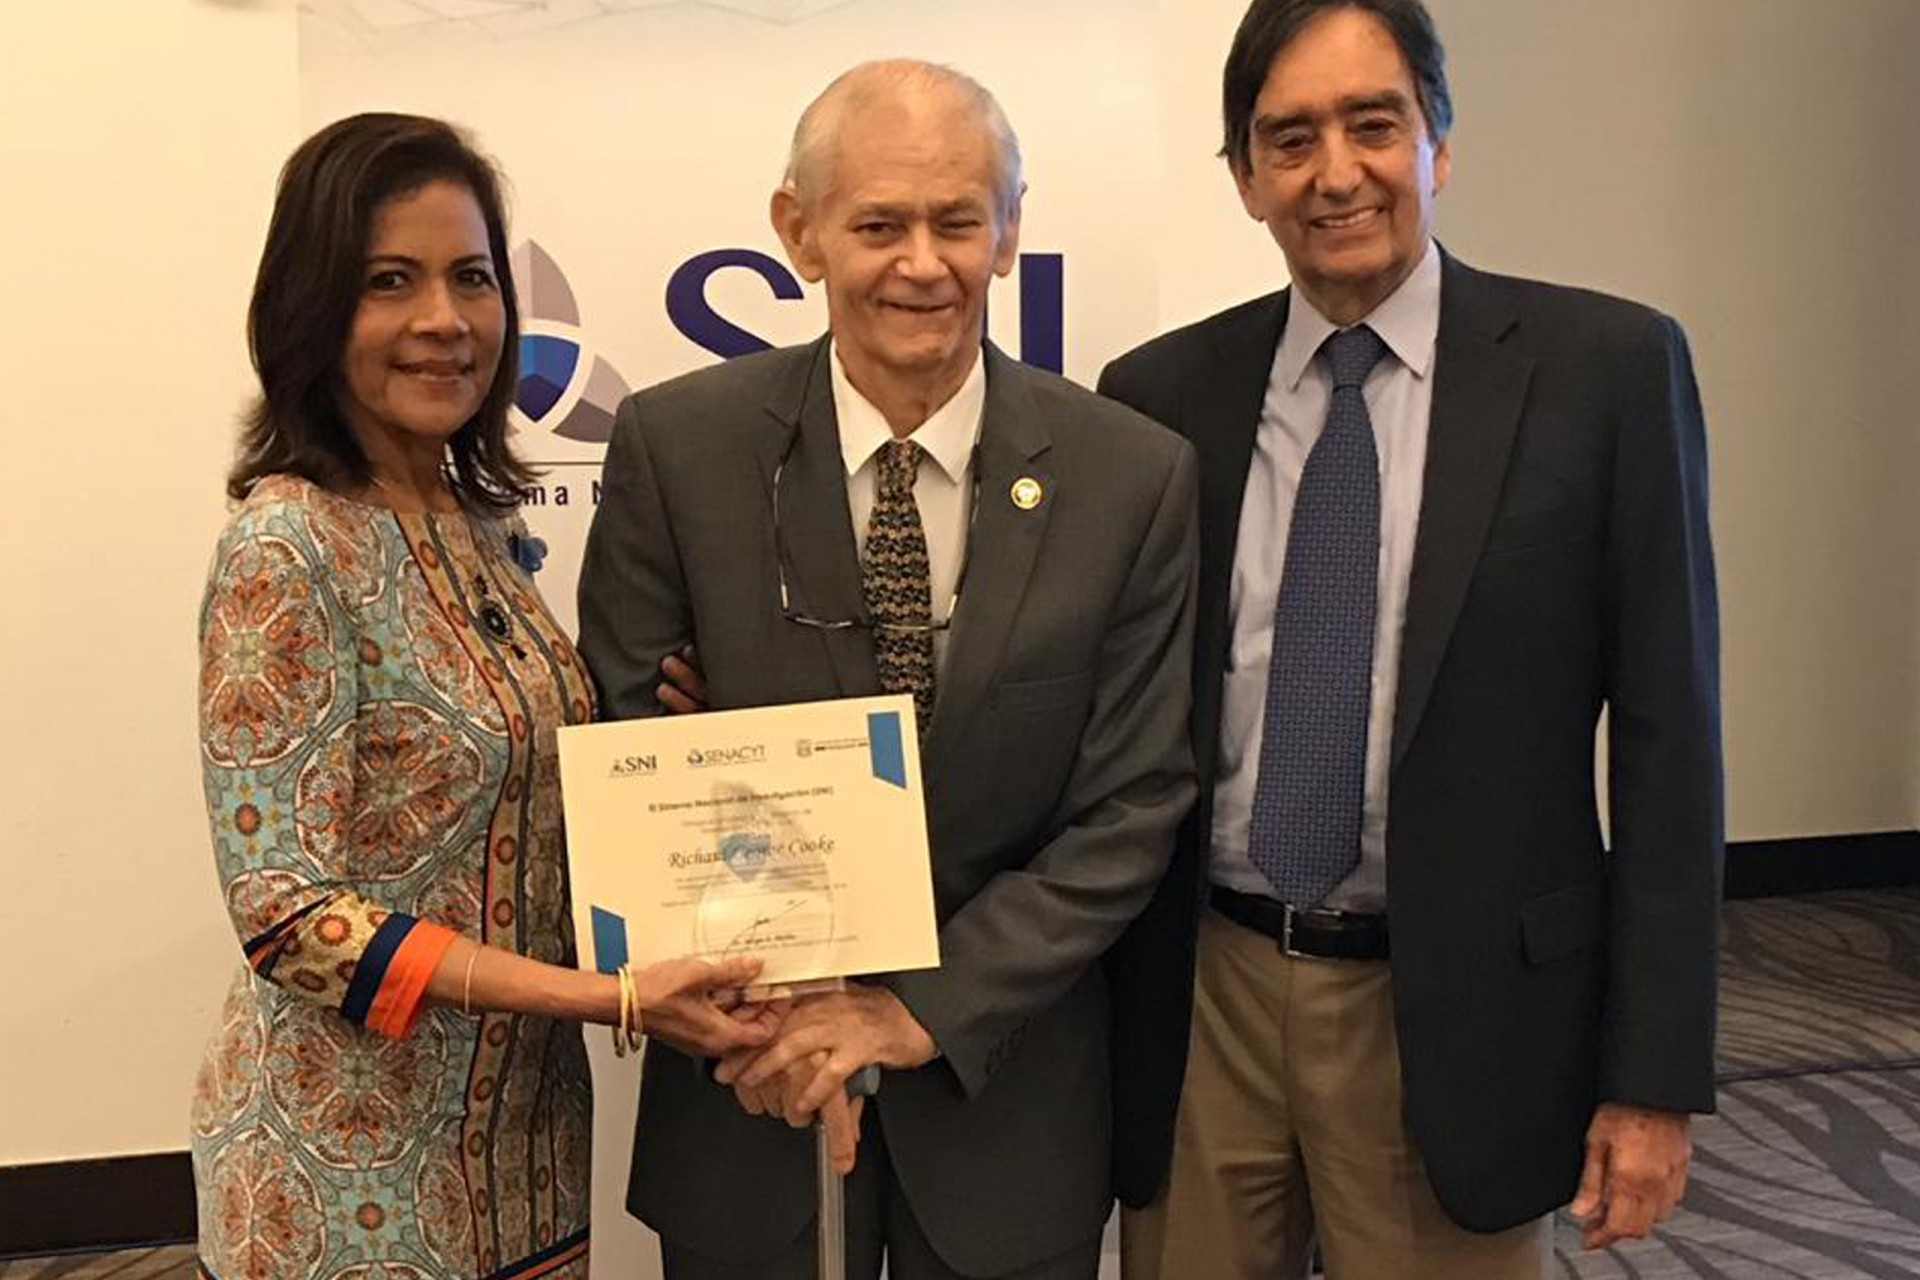 Sanjur and Cook Honored by Panama's SNI